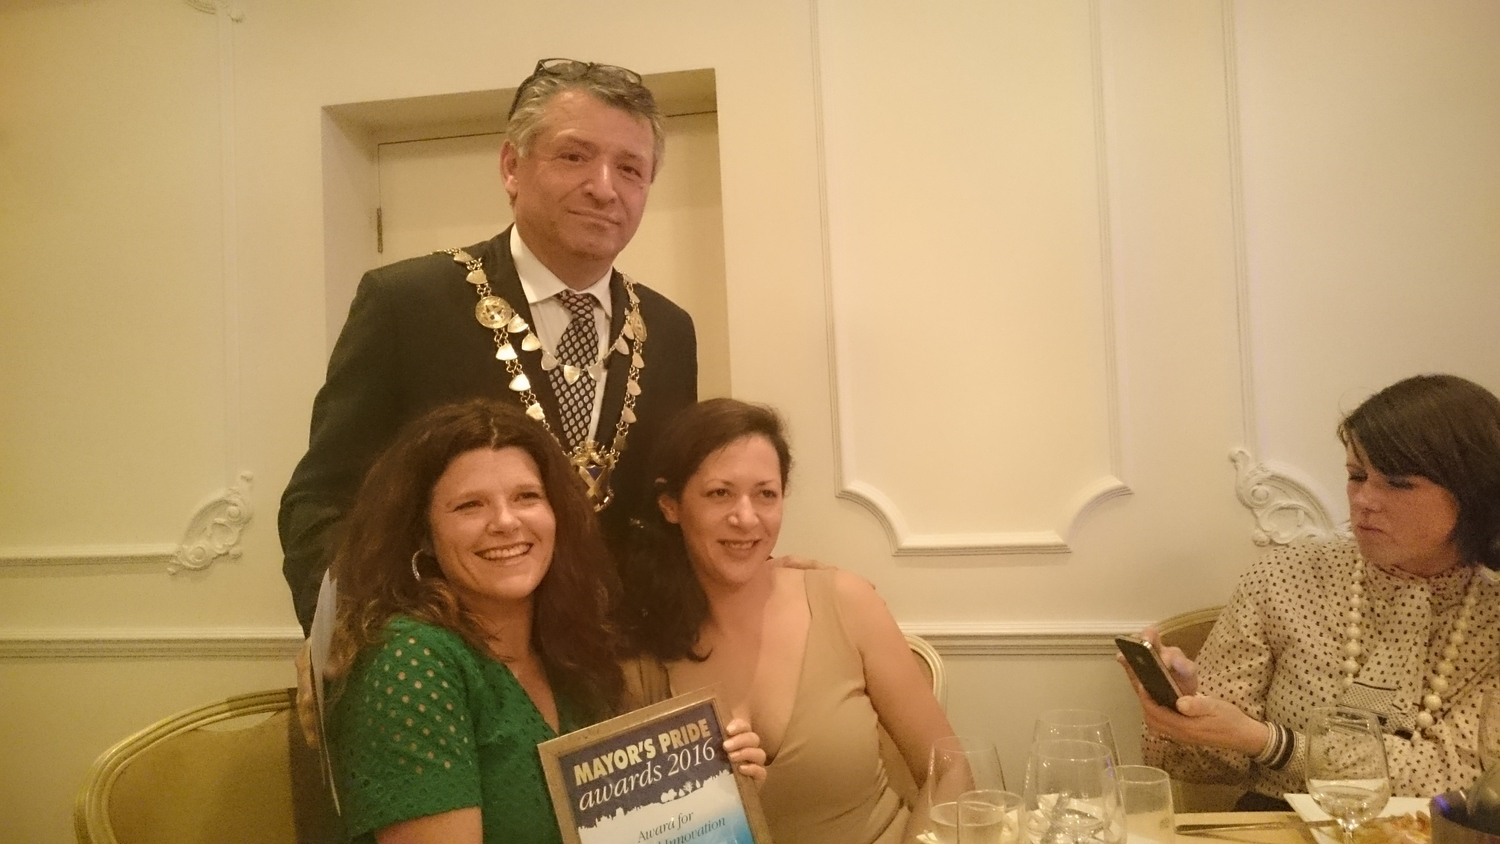 Catherine Fenton with colleagues at the Mayor's Pride Awards, March 2016